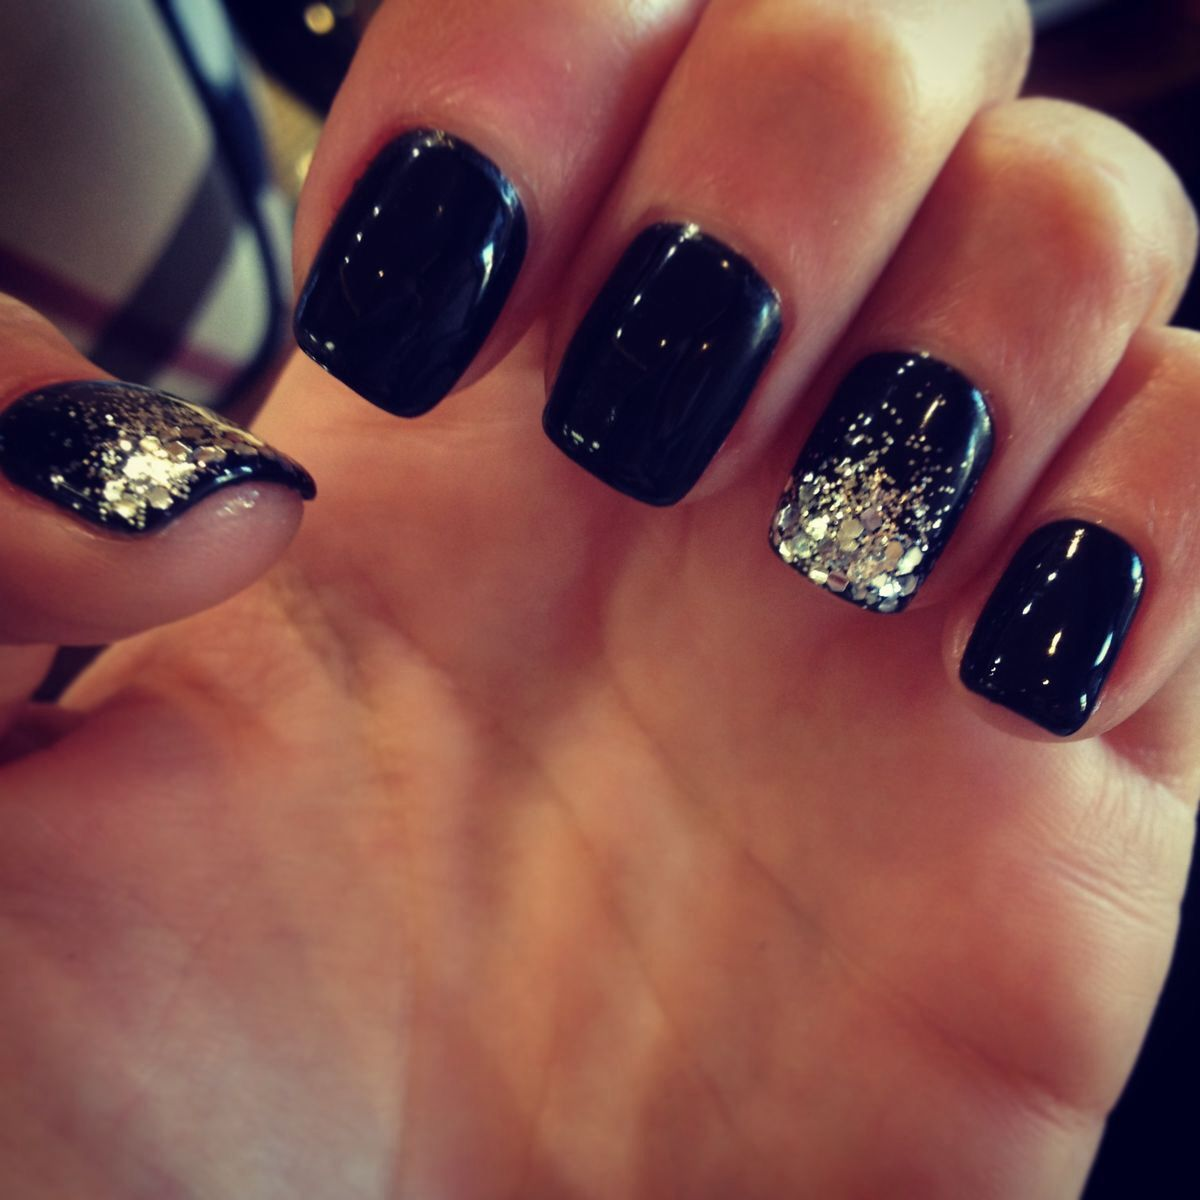 Black nails silver glitter tip accent nails n a i l s black nails silver glitter tip accent nails prinsesfo Choice Image